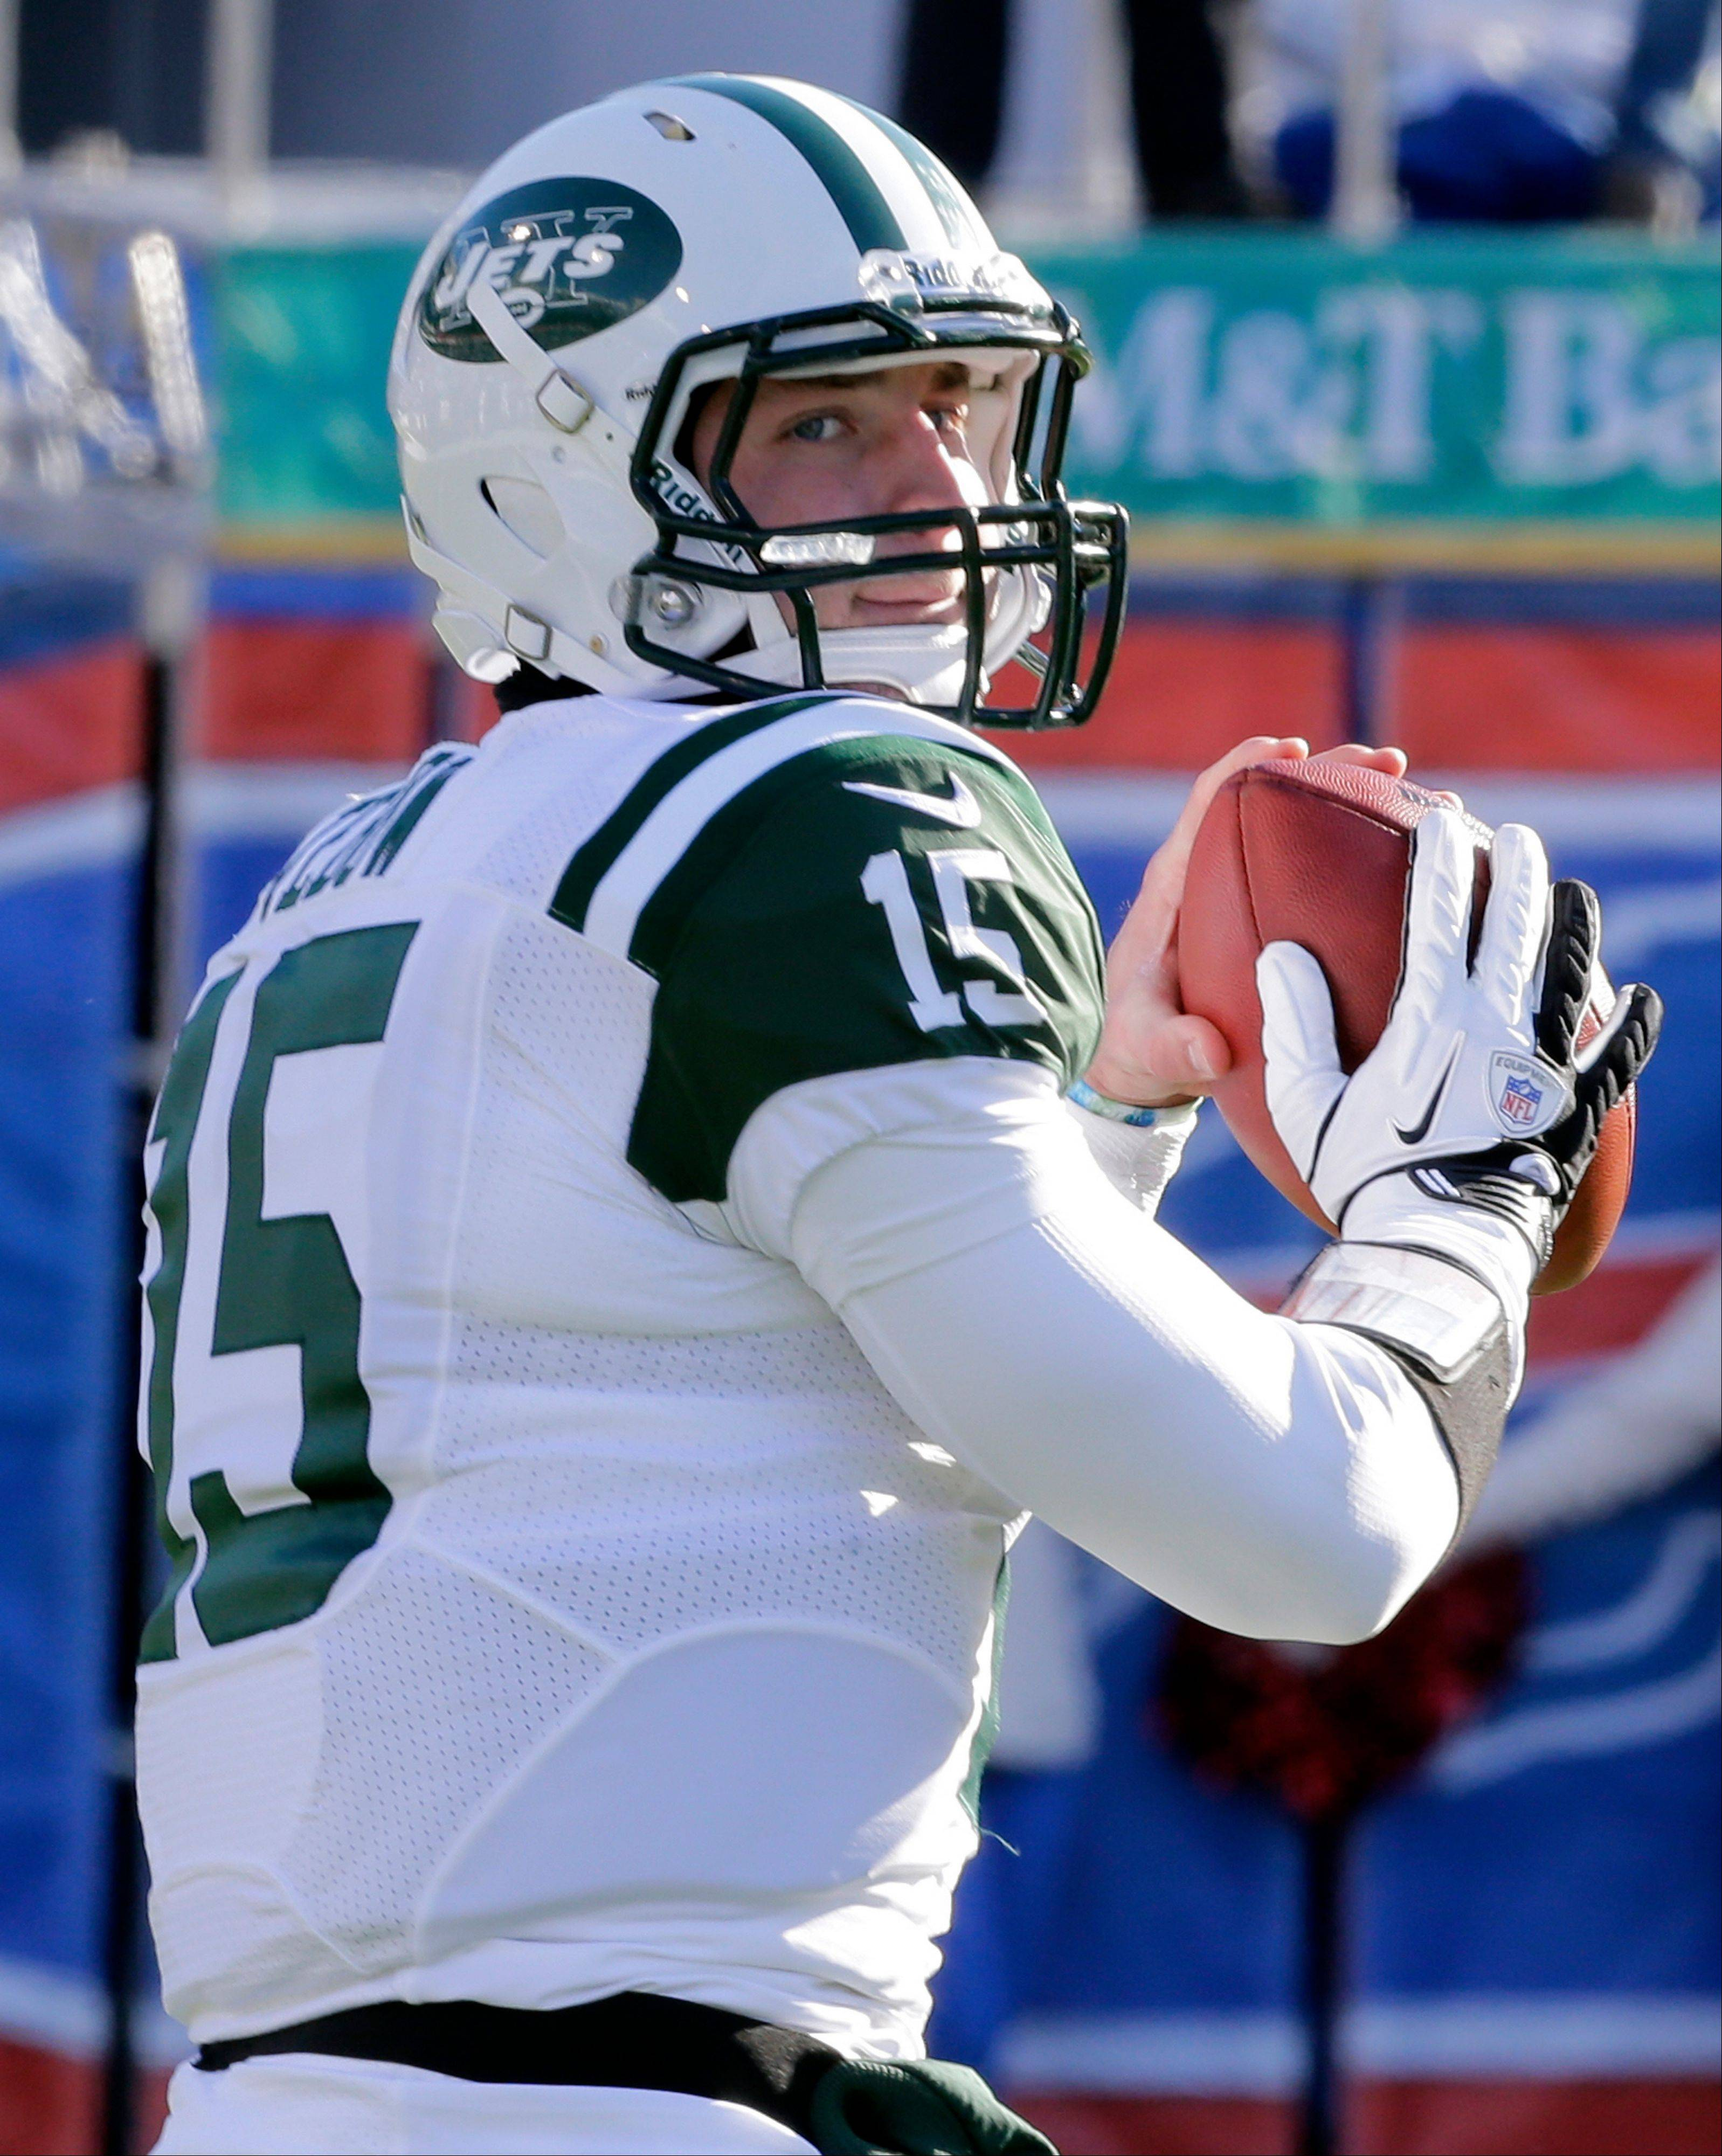 FILE - In a Sunday, Dec. 30, 2012, file photo, New York Jets quarterback Tim Tebow (15) warms up before of an NFL football game against the Buffalo Bills, in Orchard Park, N.Y. Likely done in New York after one frustrating season and Jacksonville already saying no to a happy homecoming, what's next for Tebow, one of the league's most popular and polarizing players? A backup role on another NFL team? A position change? The Canadian Football League? Well, even Tebow isn't sure.